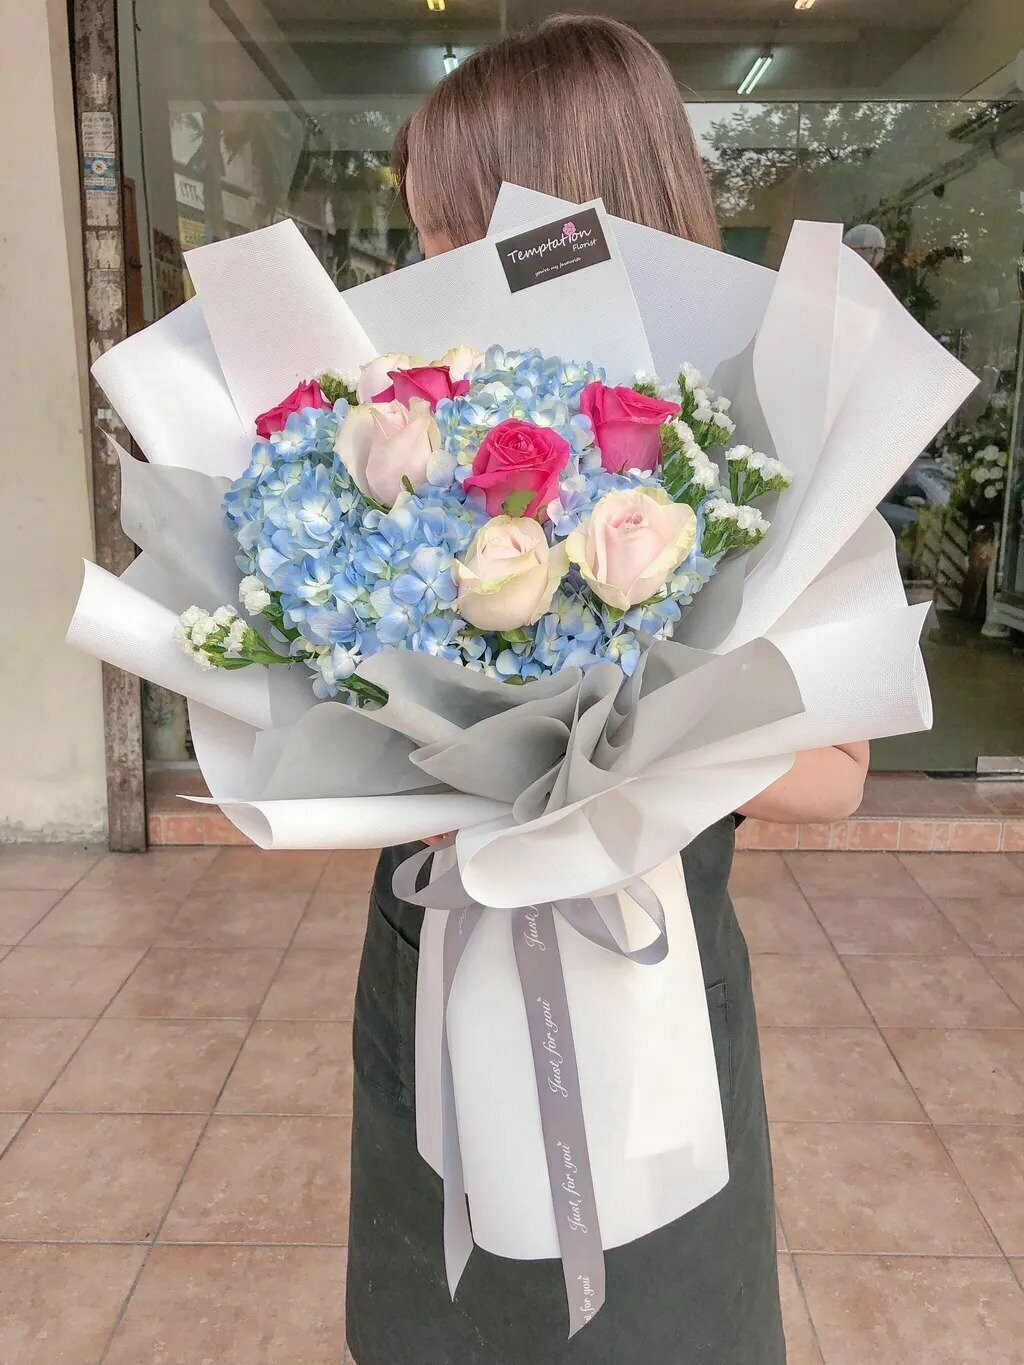 Floral (By: Temptation Florist from Seremban)